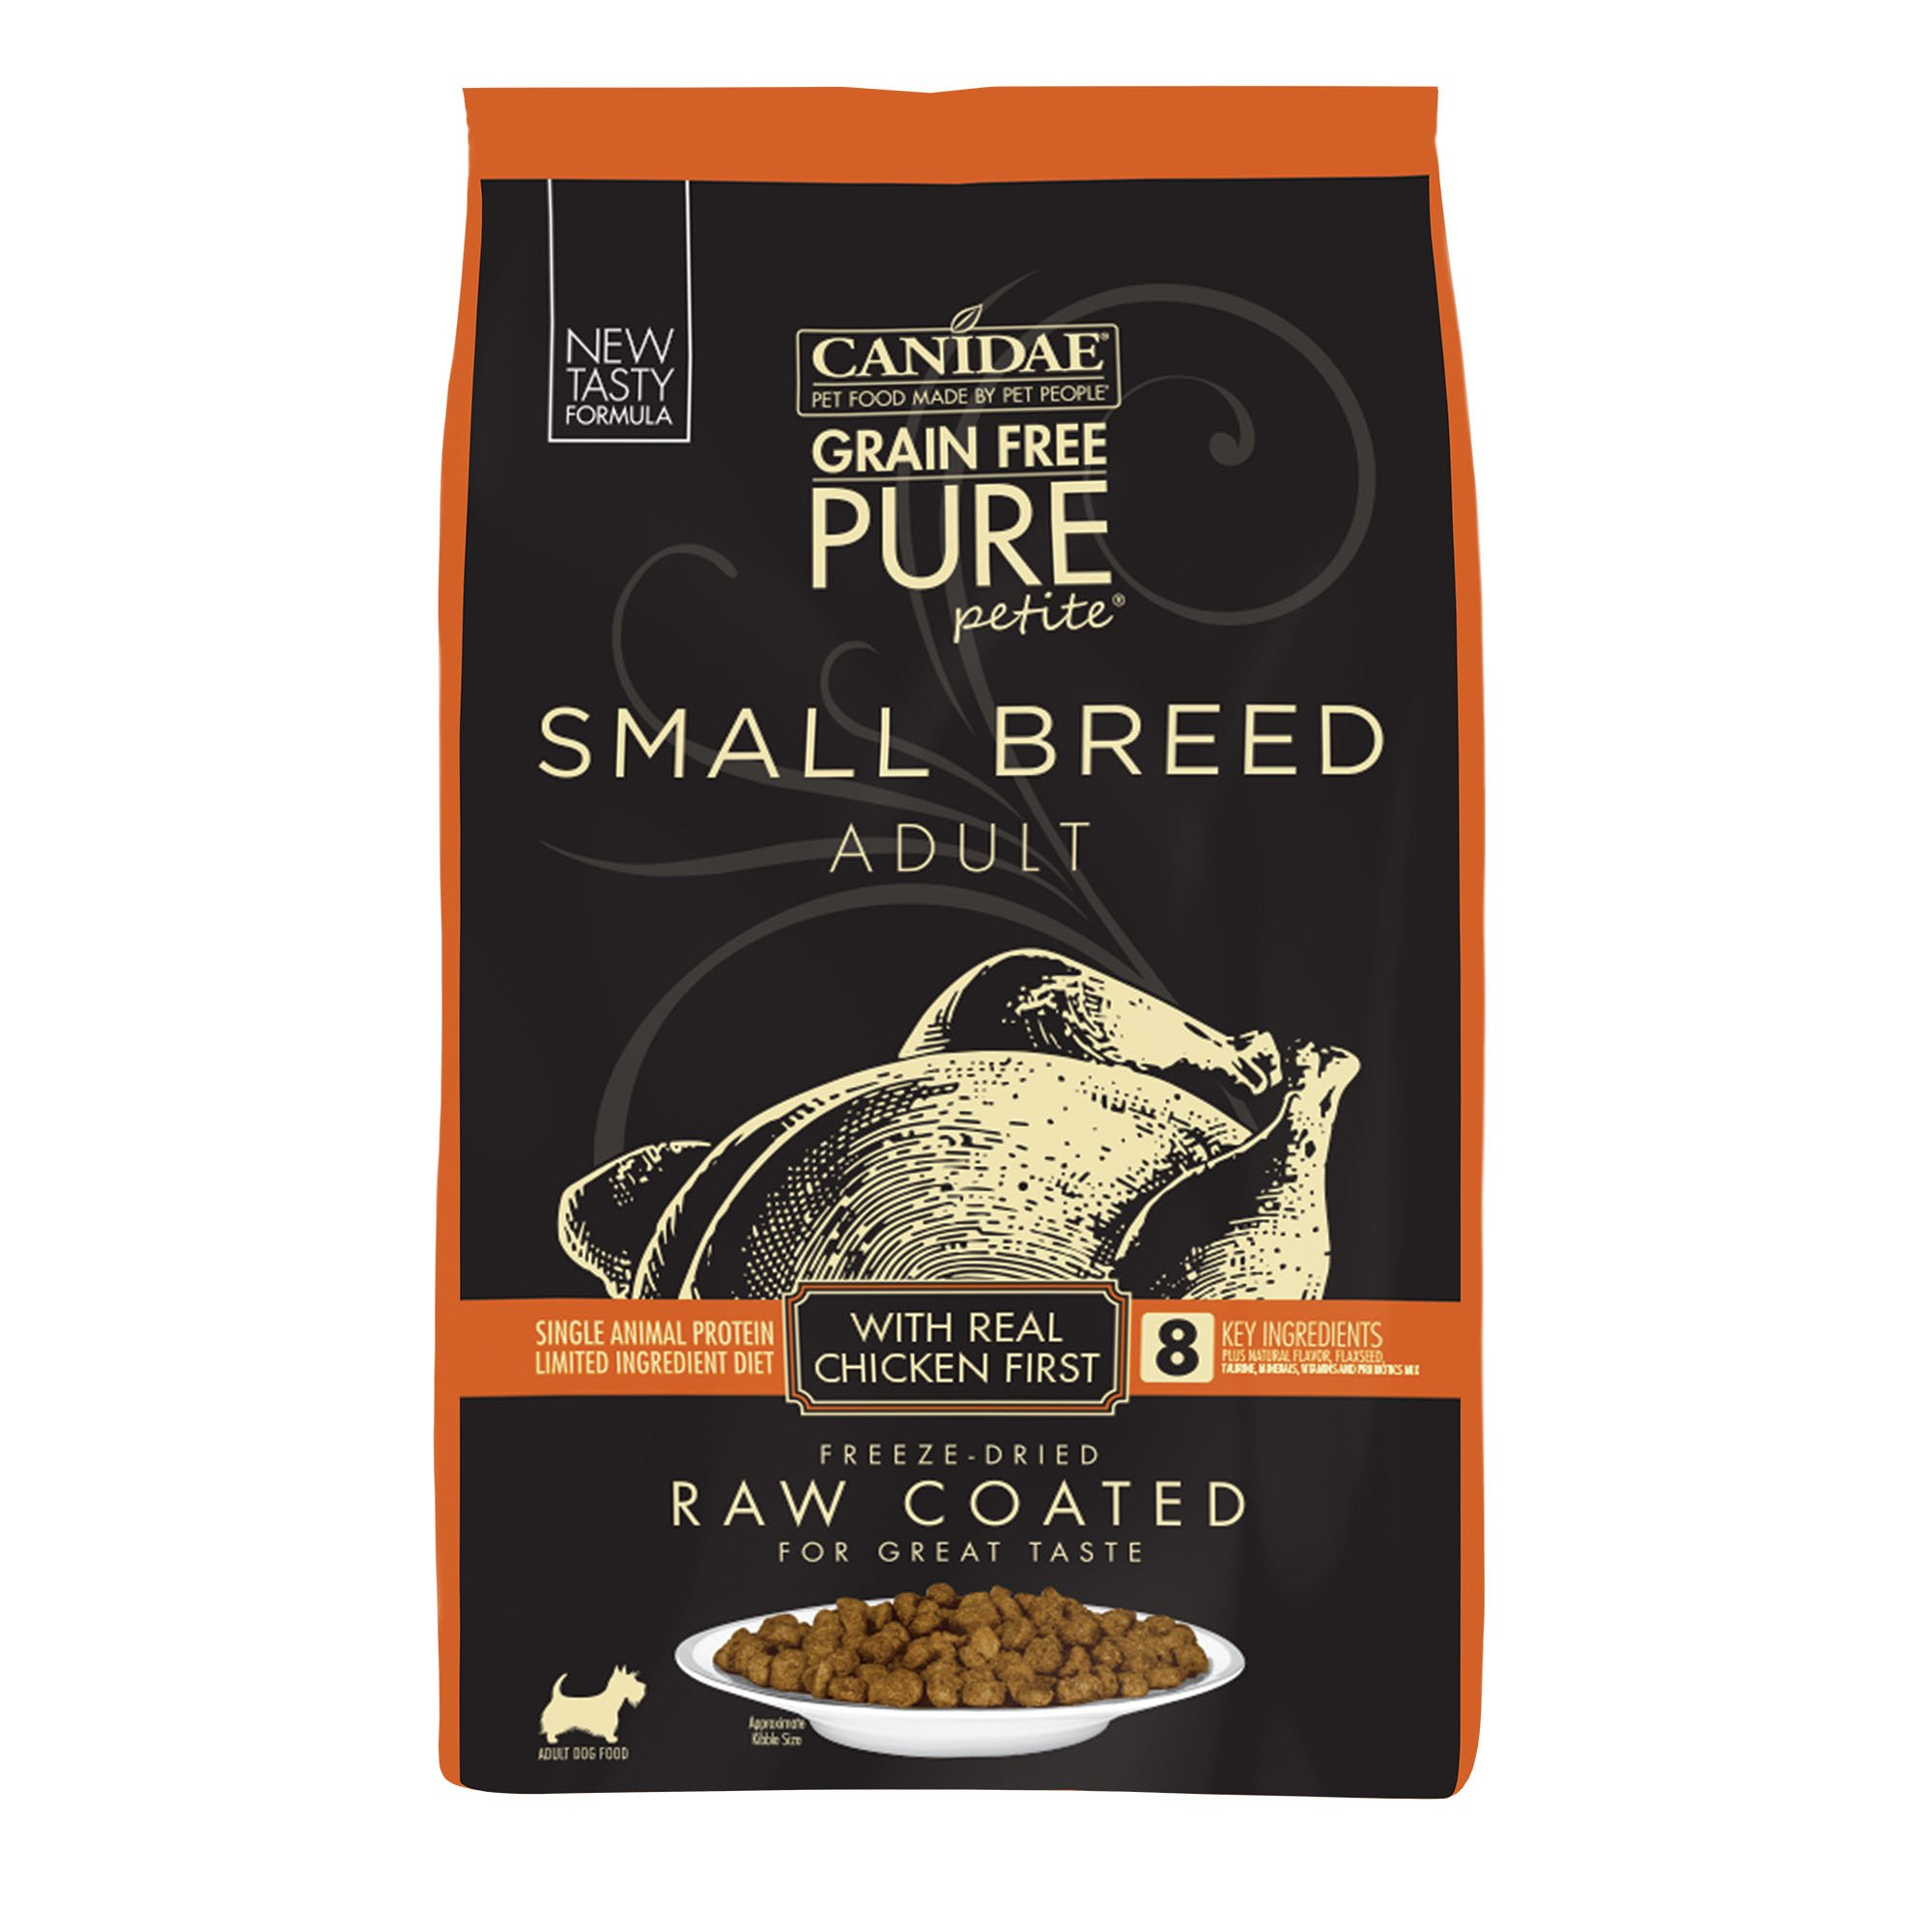 CANIDAE Grain Free PURE Petite Small Breed Dry Dog Food Raw Coated Formula with Chicken, 10 lbs.